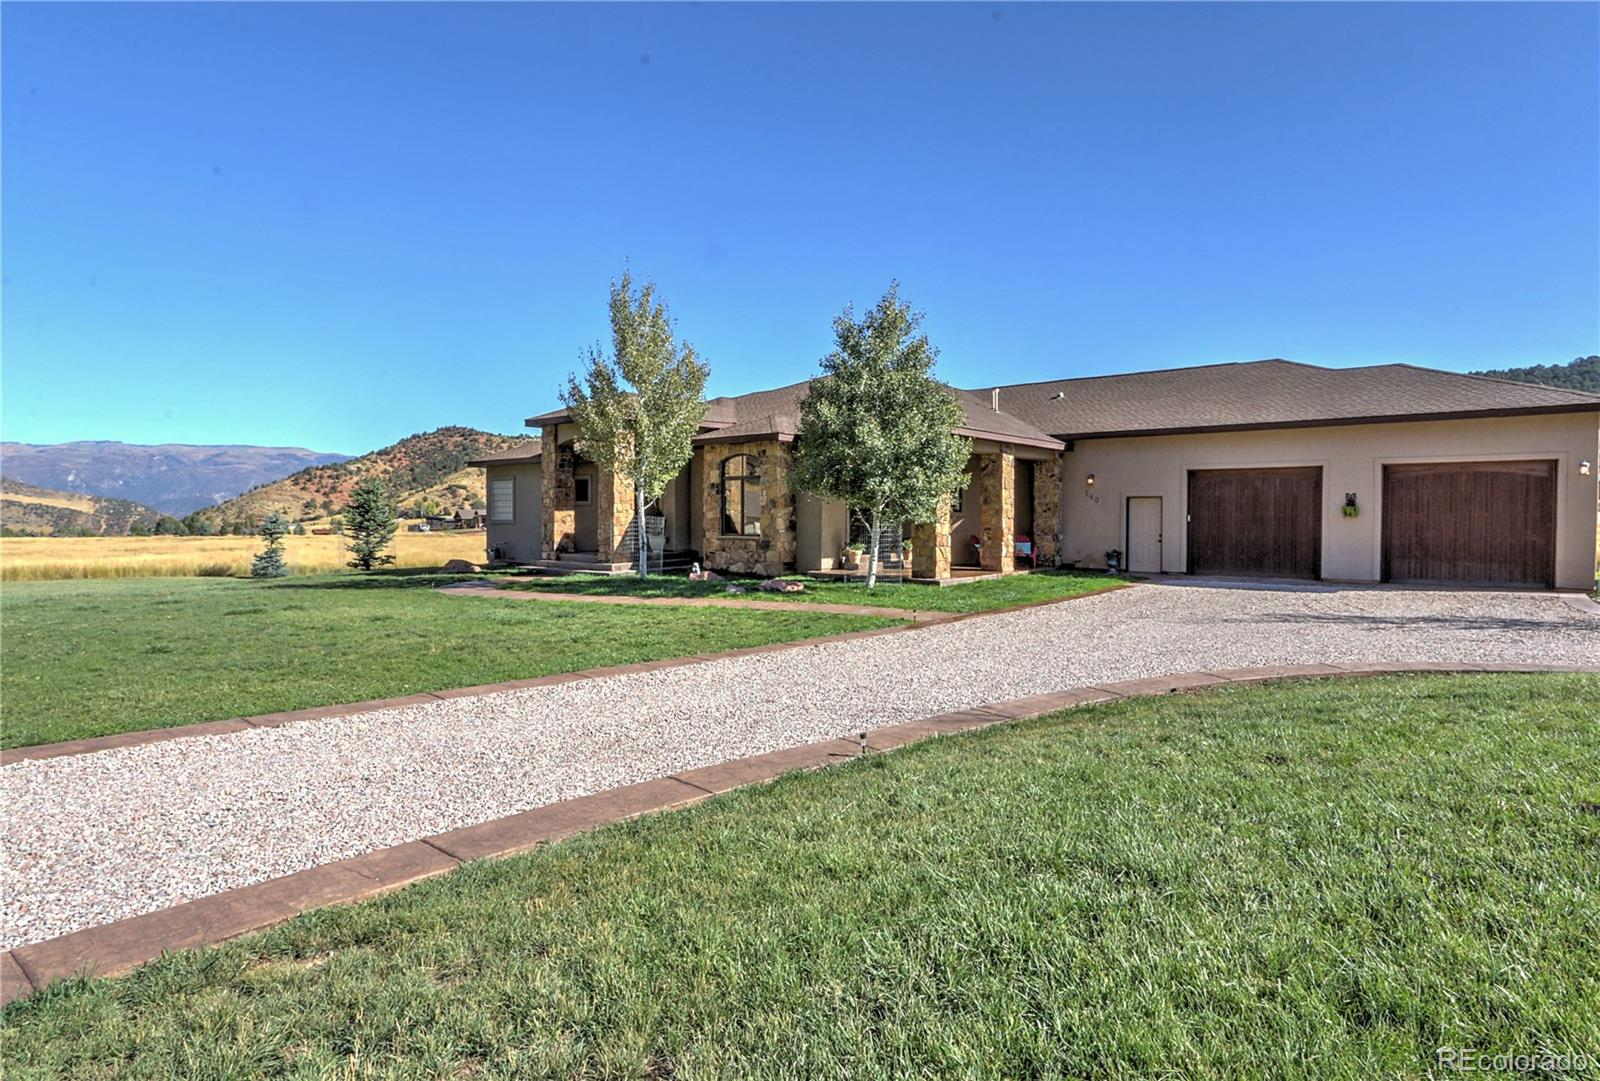 140 High Point Drive - Glenwood Springs, Colorado